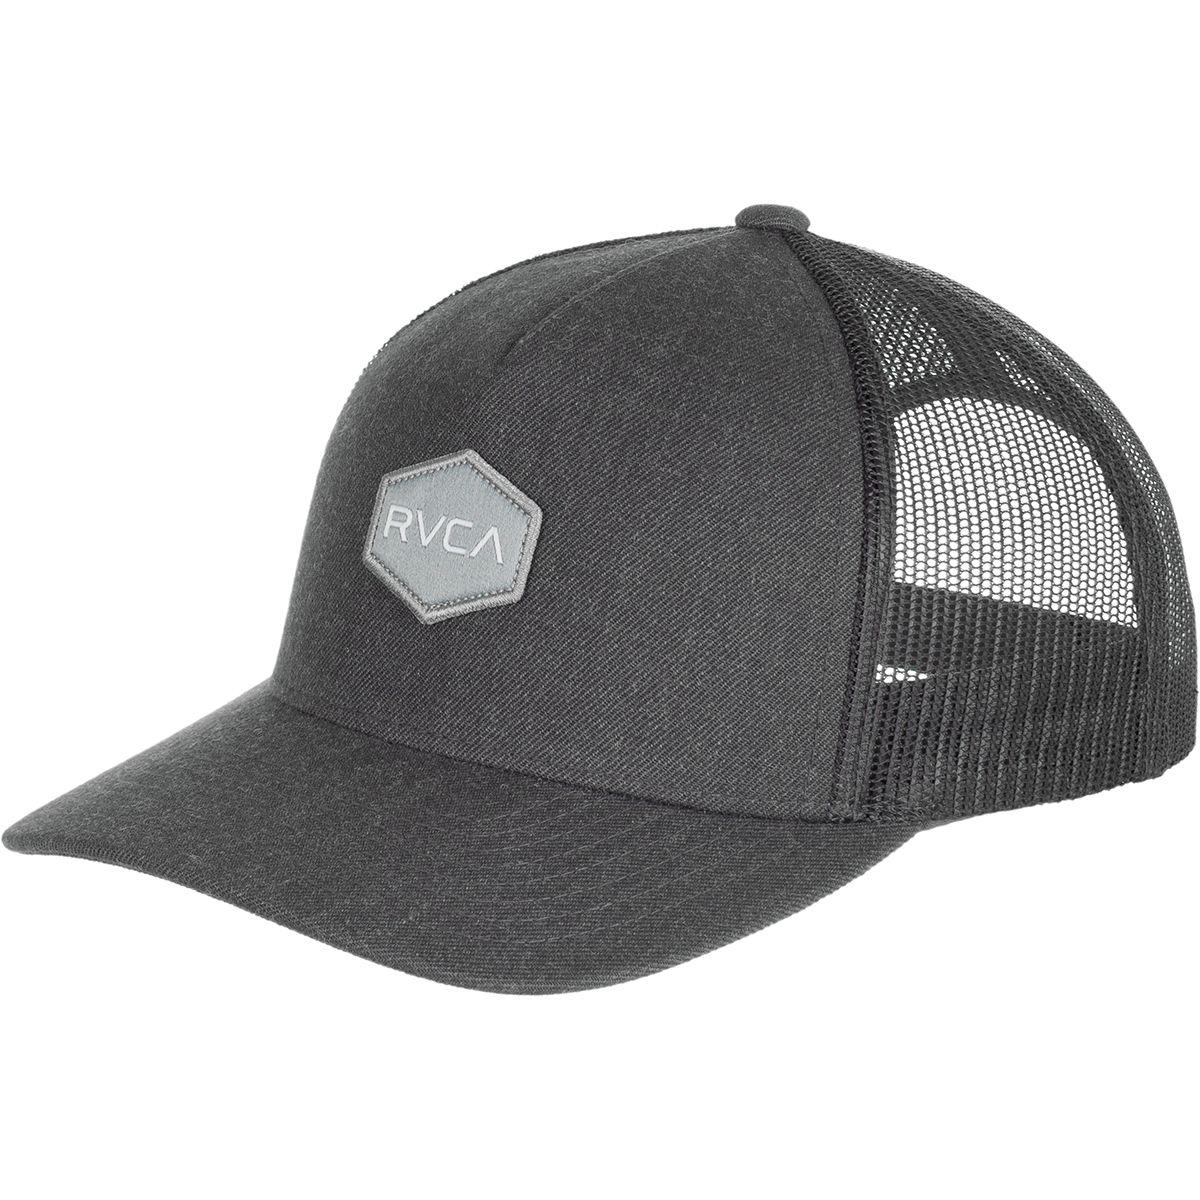 8ca01efa inexpensive lyst rvca commonwealth trucker hat in gray for men a36a9 20d5d